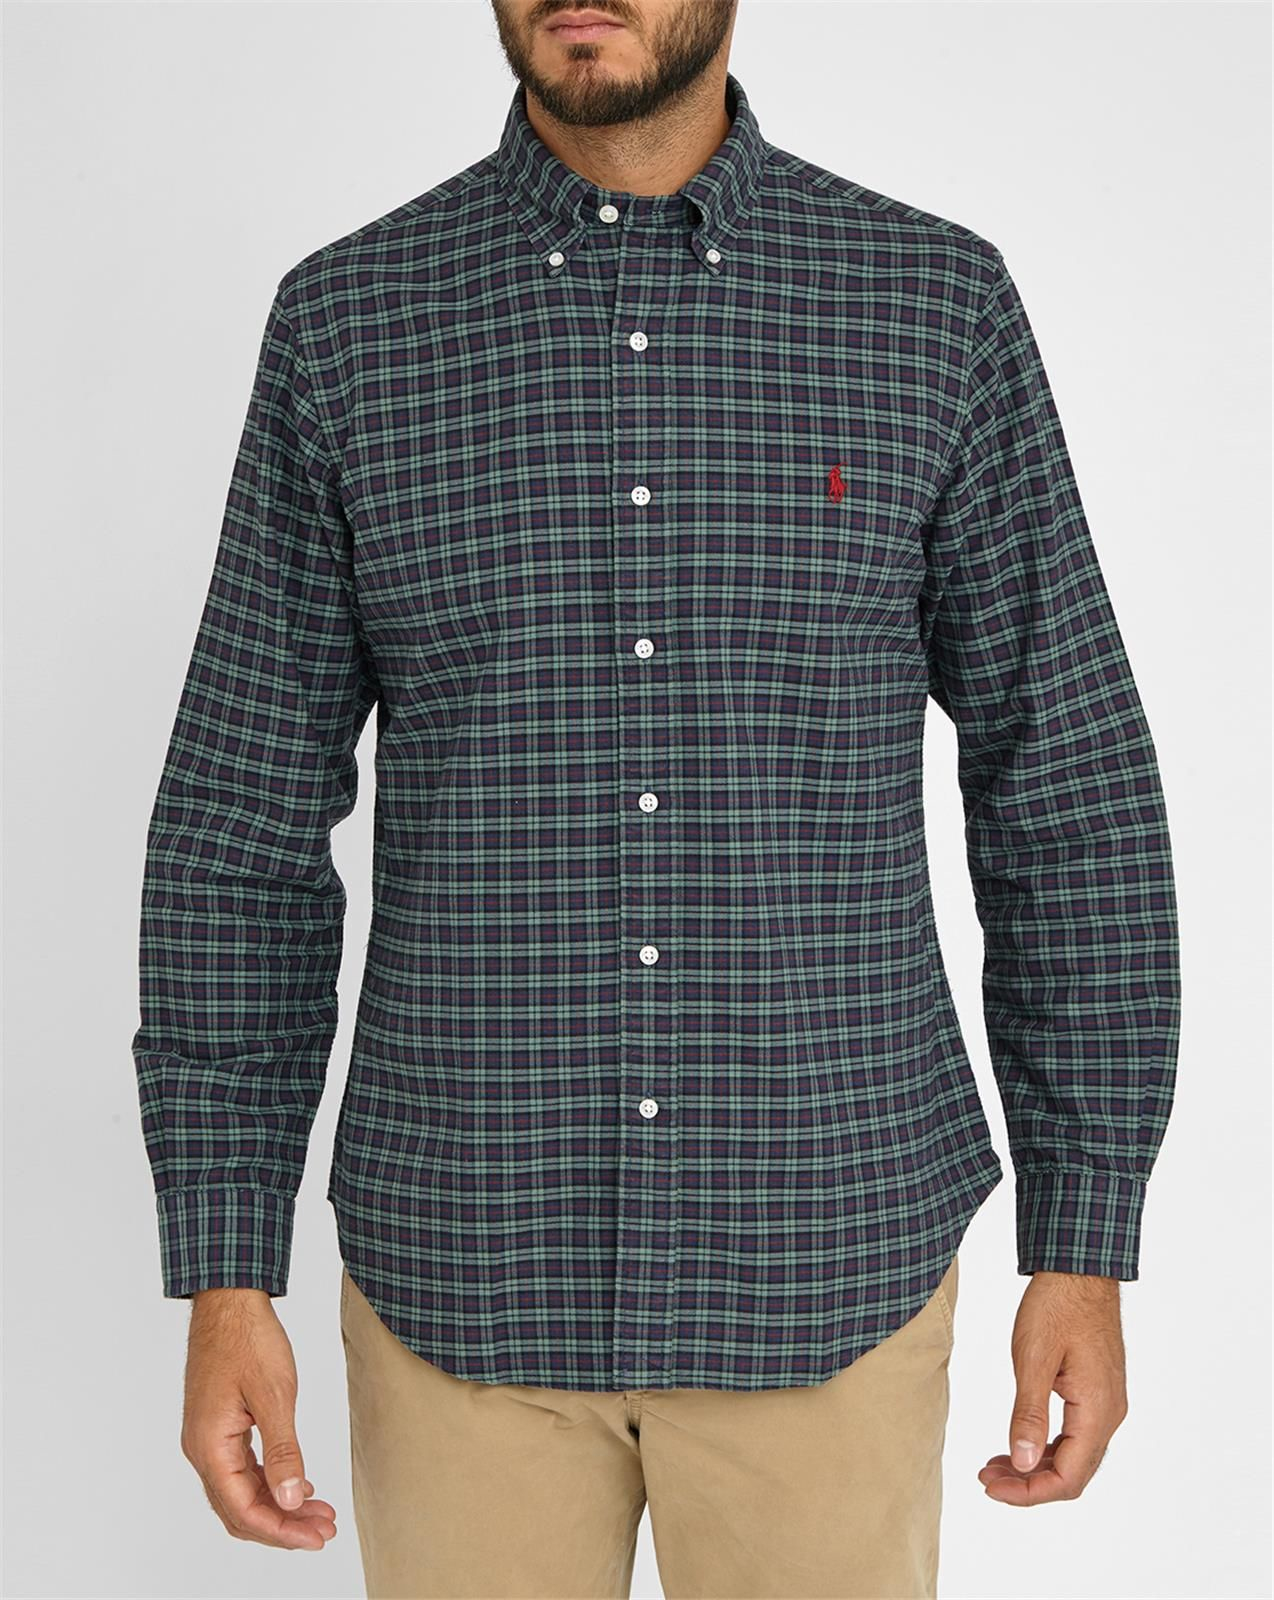 Polo ralph lauren green and blue and red checked custom for Red and green checked shirt